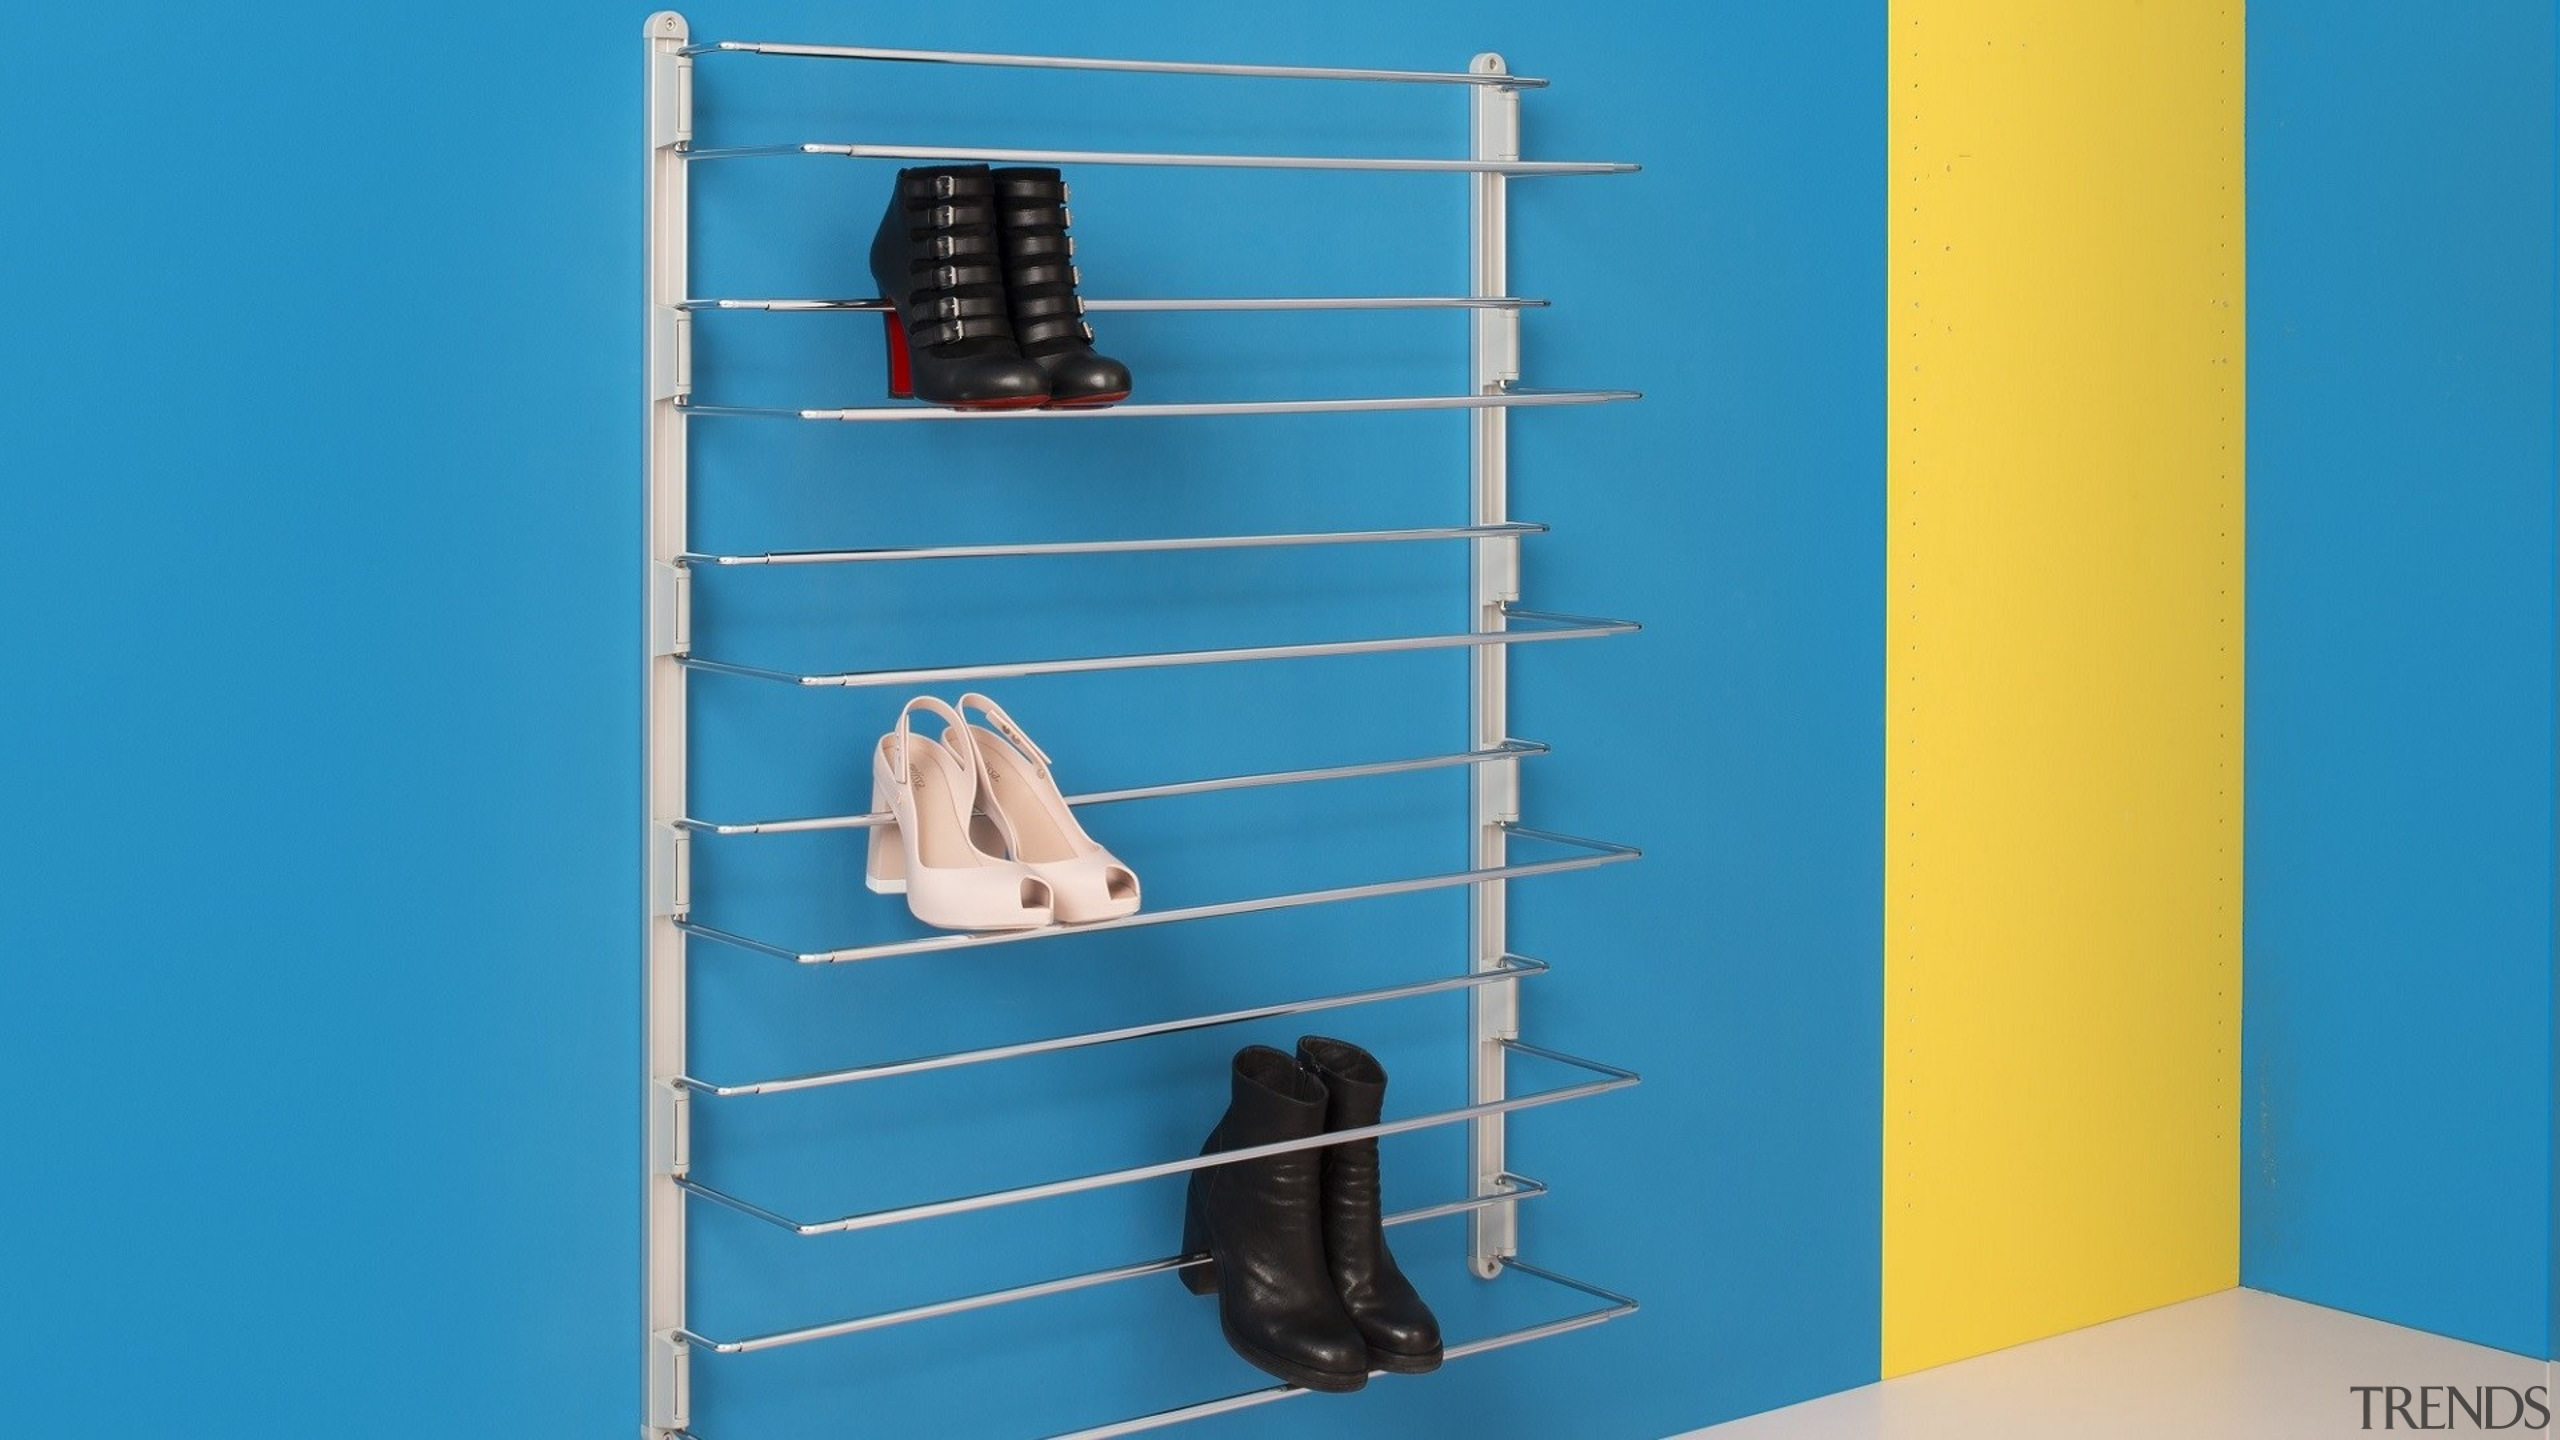 Ambos Shoe Racks - Ambos Shoe Racks - blue, furniture, line, locker, product, shelf, shelving, teal